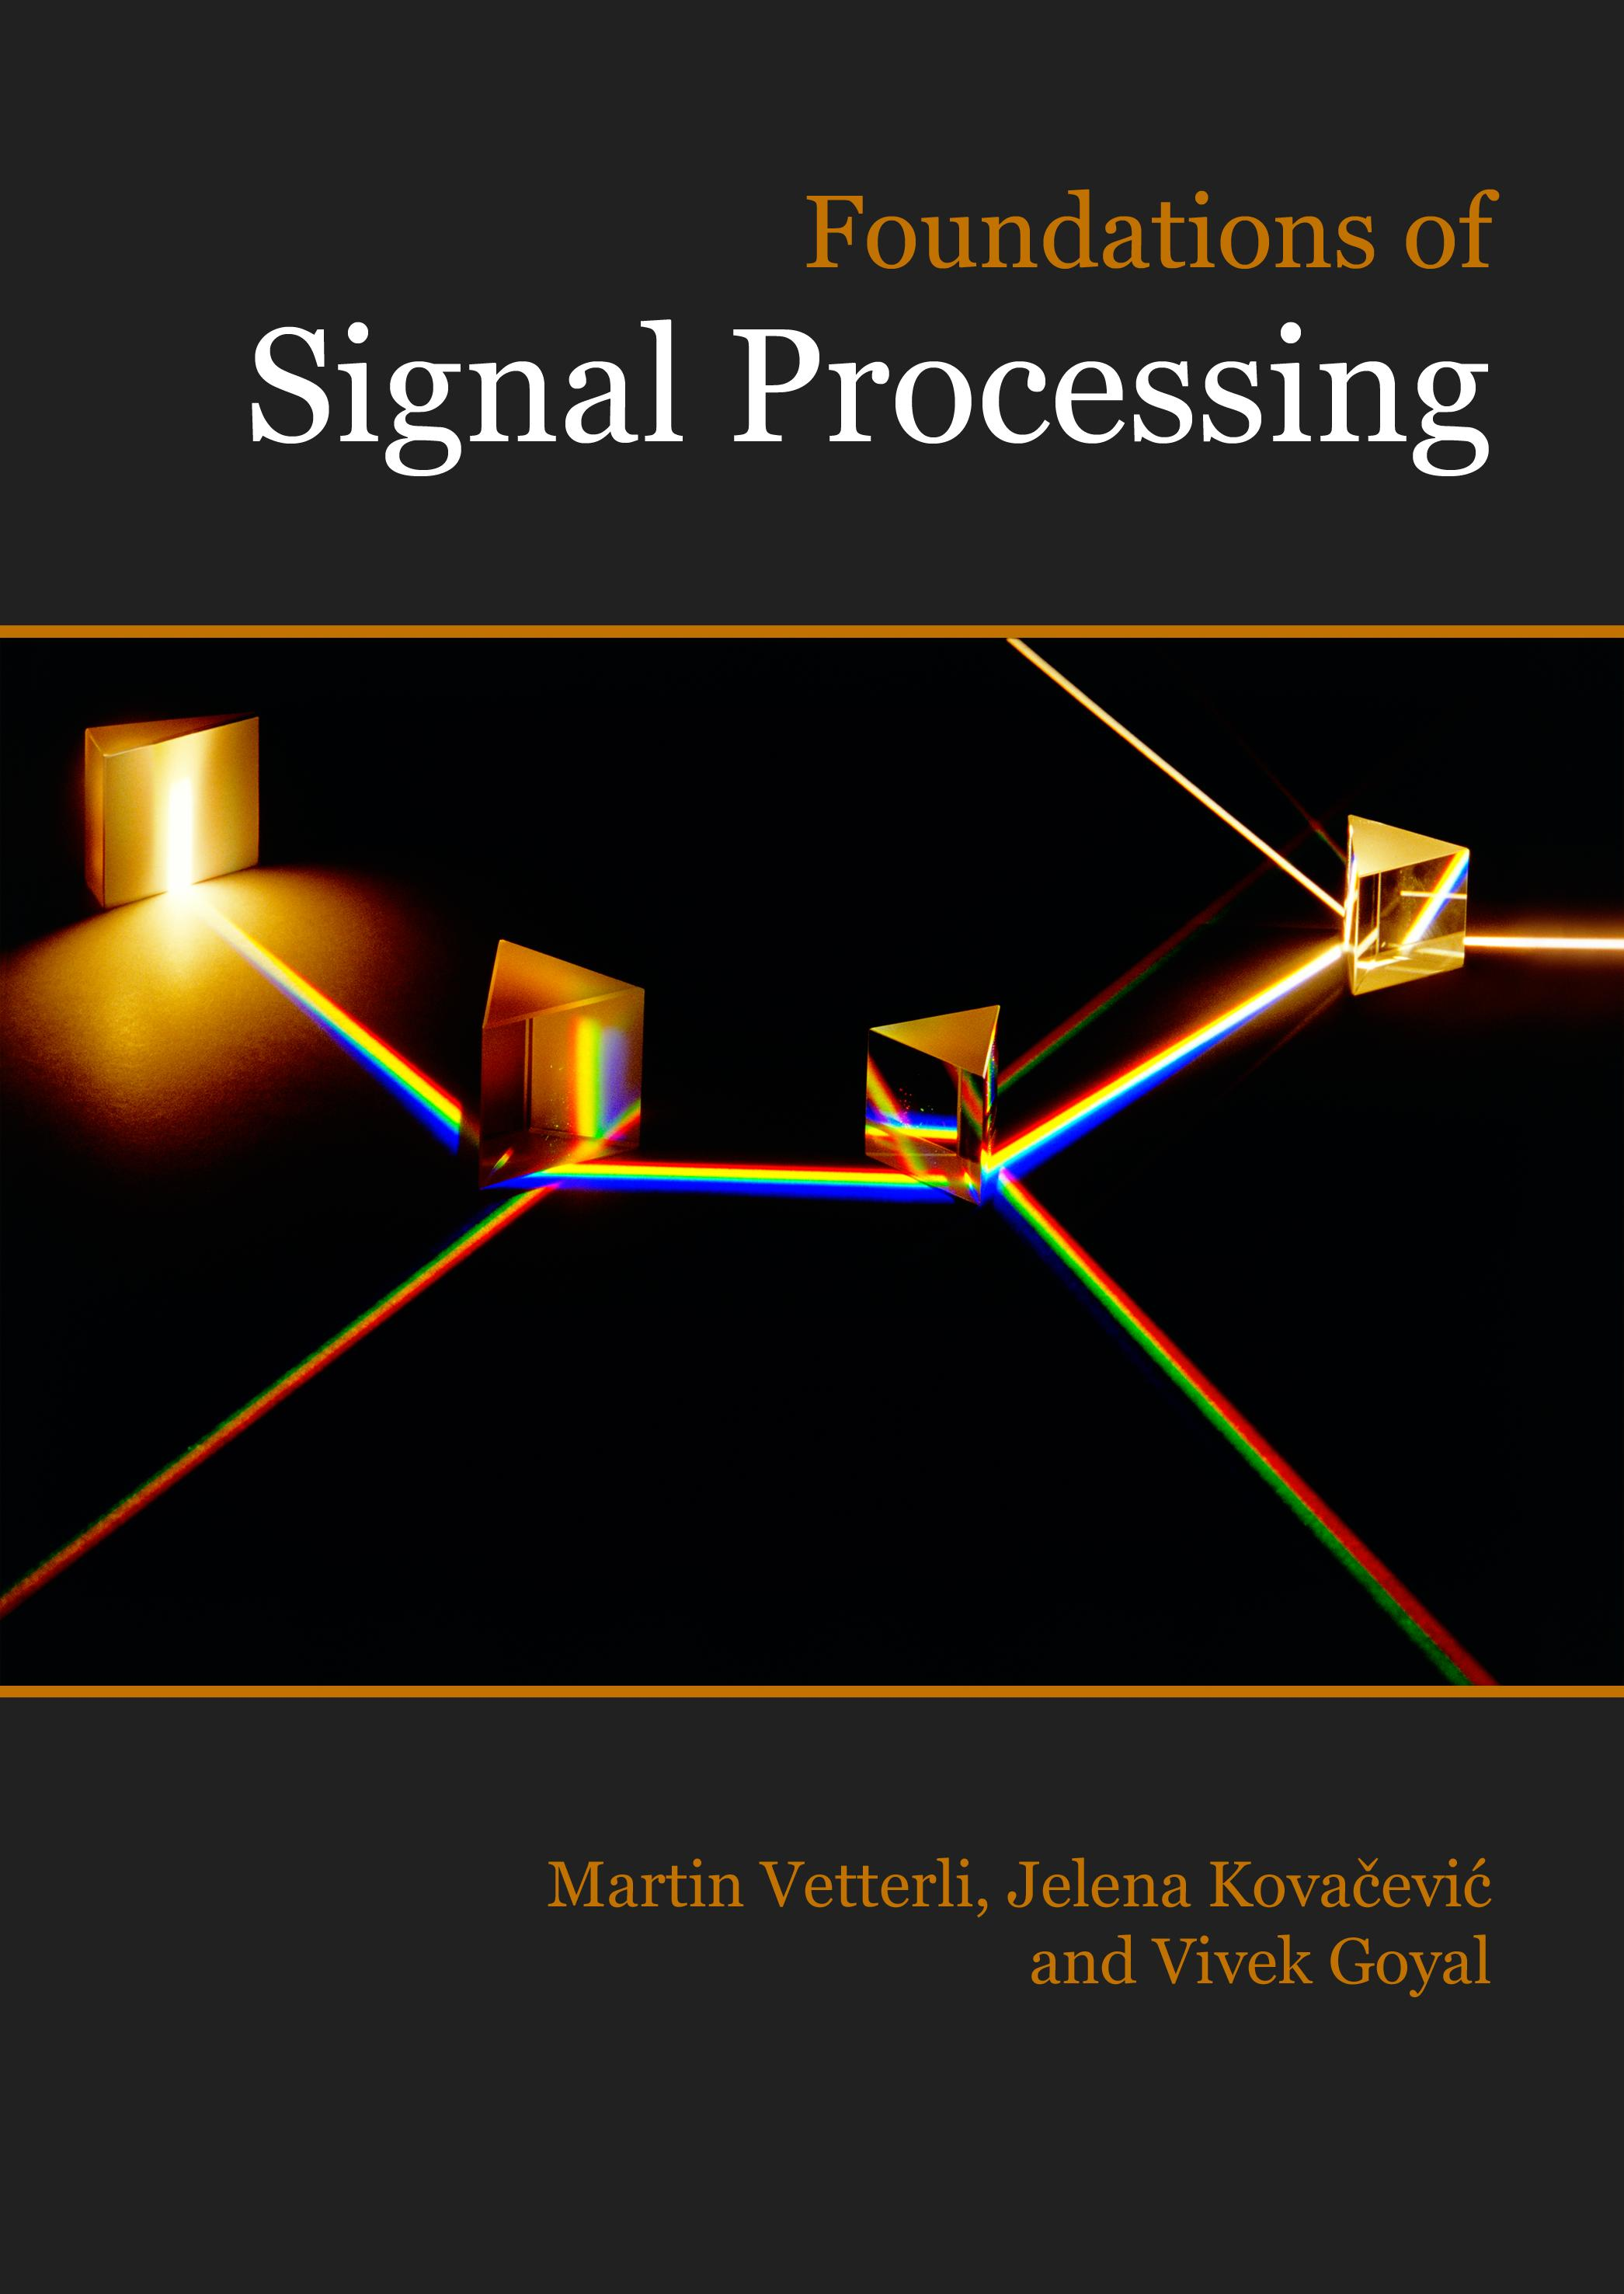 Signal Processing: Foundations by Vetterli, Kovacevic, and Goyal